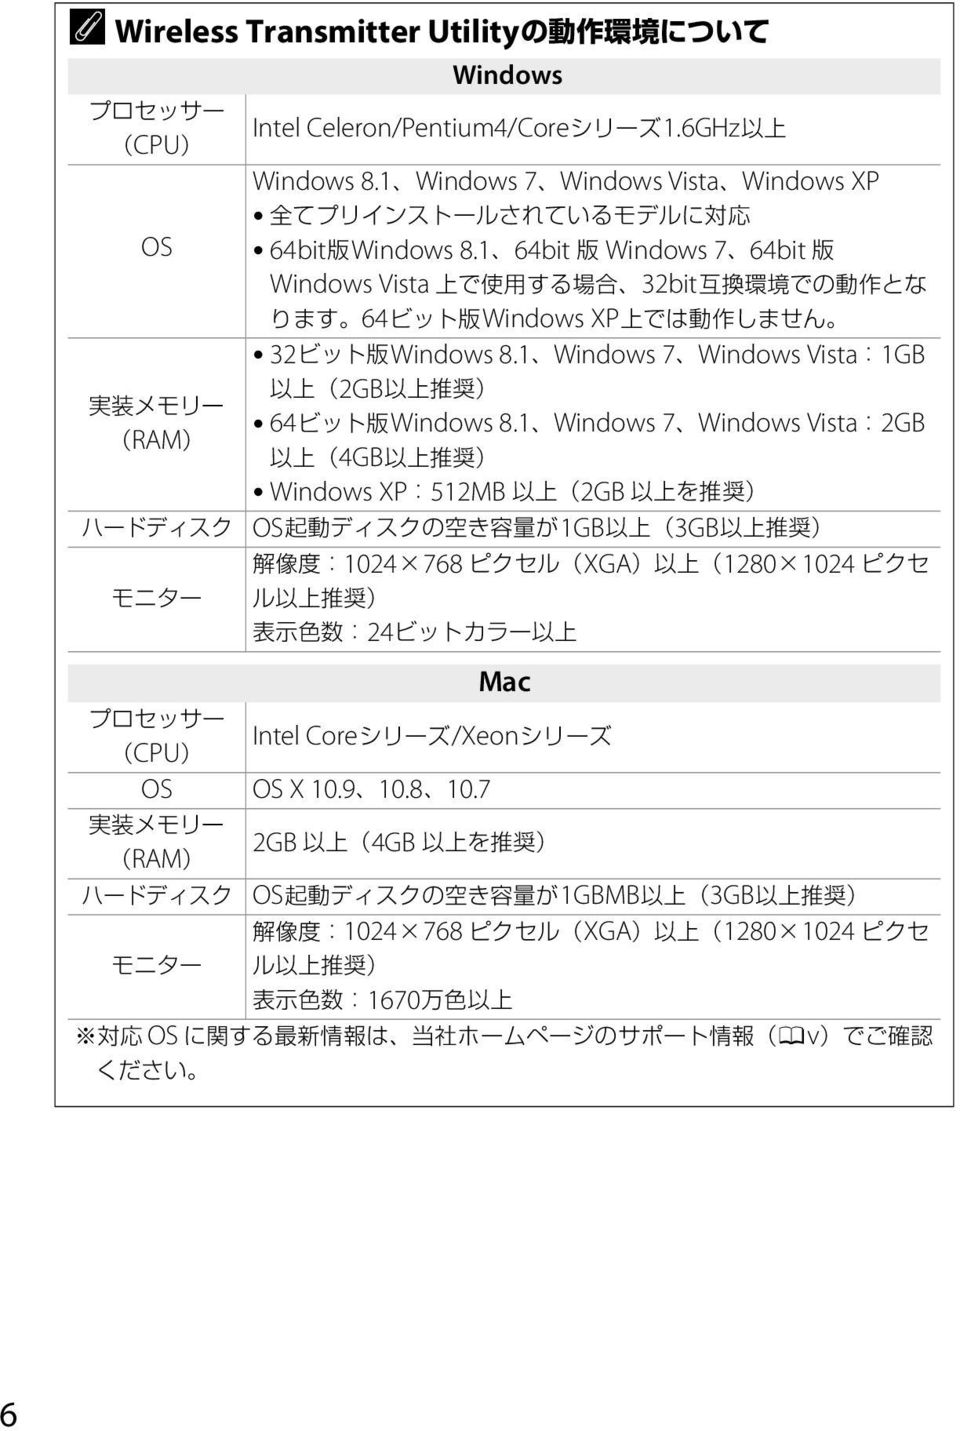 1 64bit Windows 7 64bit Windows Vista 32bit 64Windows XP 32Windows 8.1 Windows 7 Windows Vista 1GB 2GB 64Windows 8.